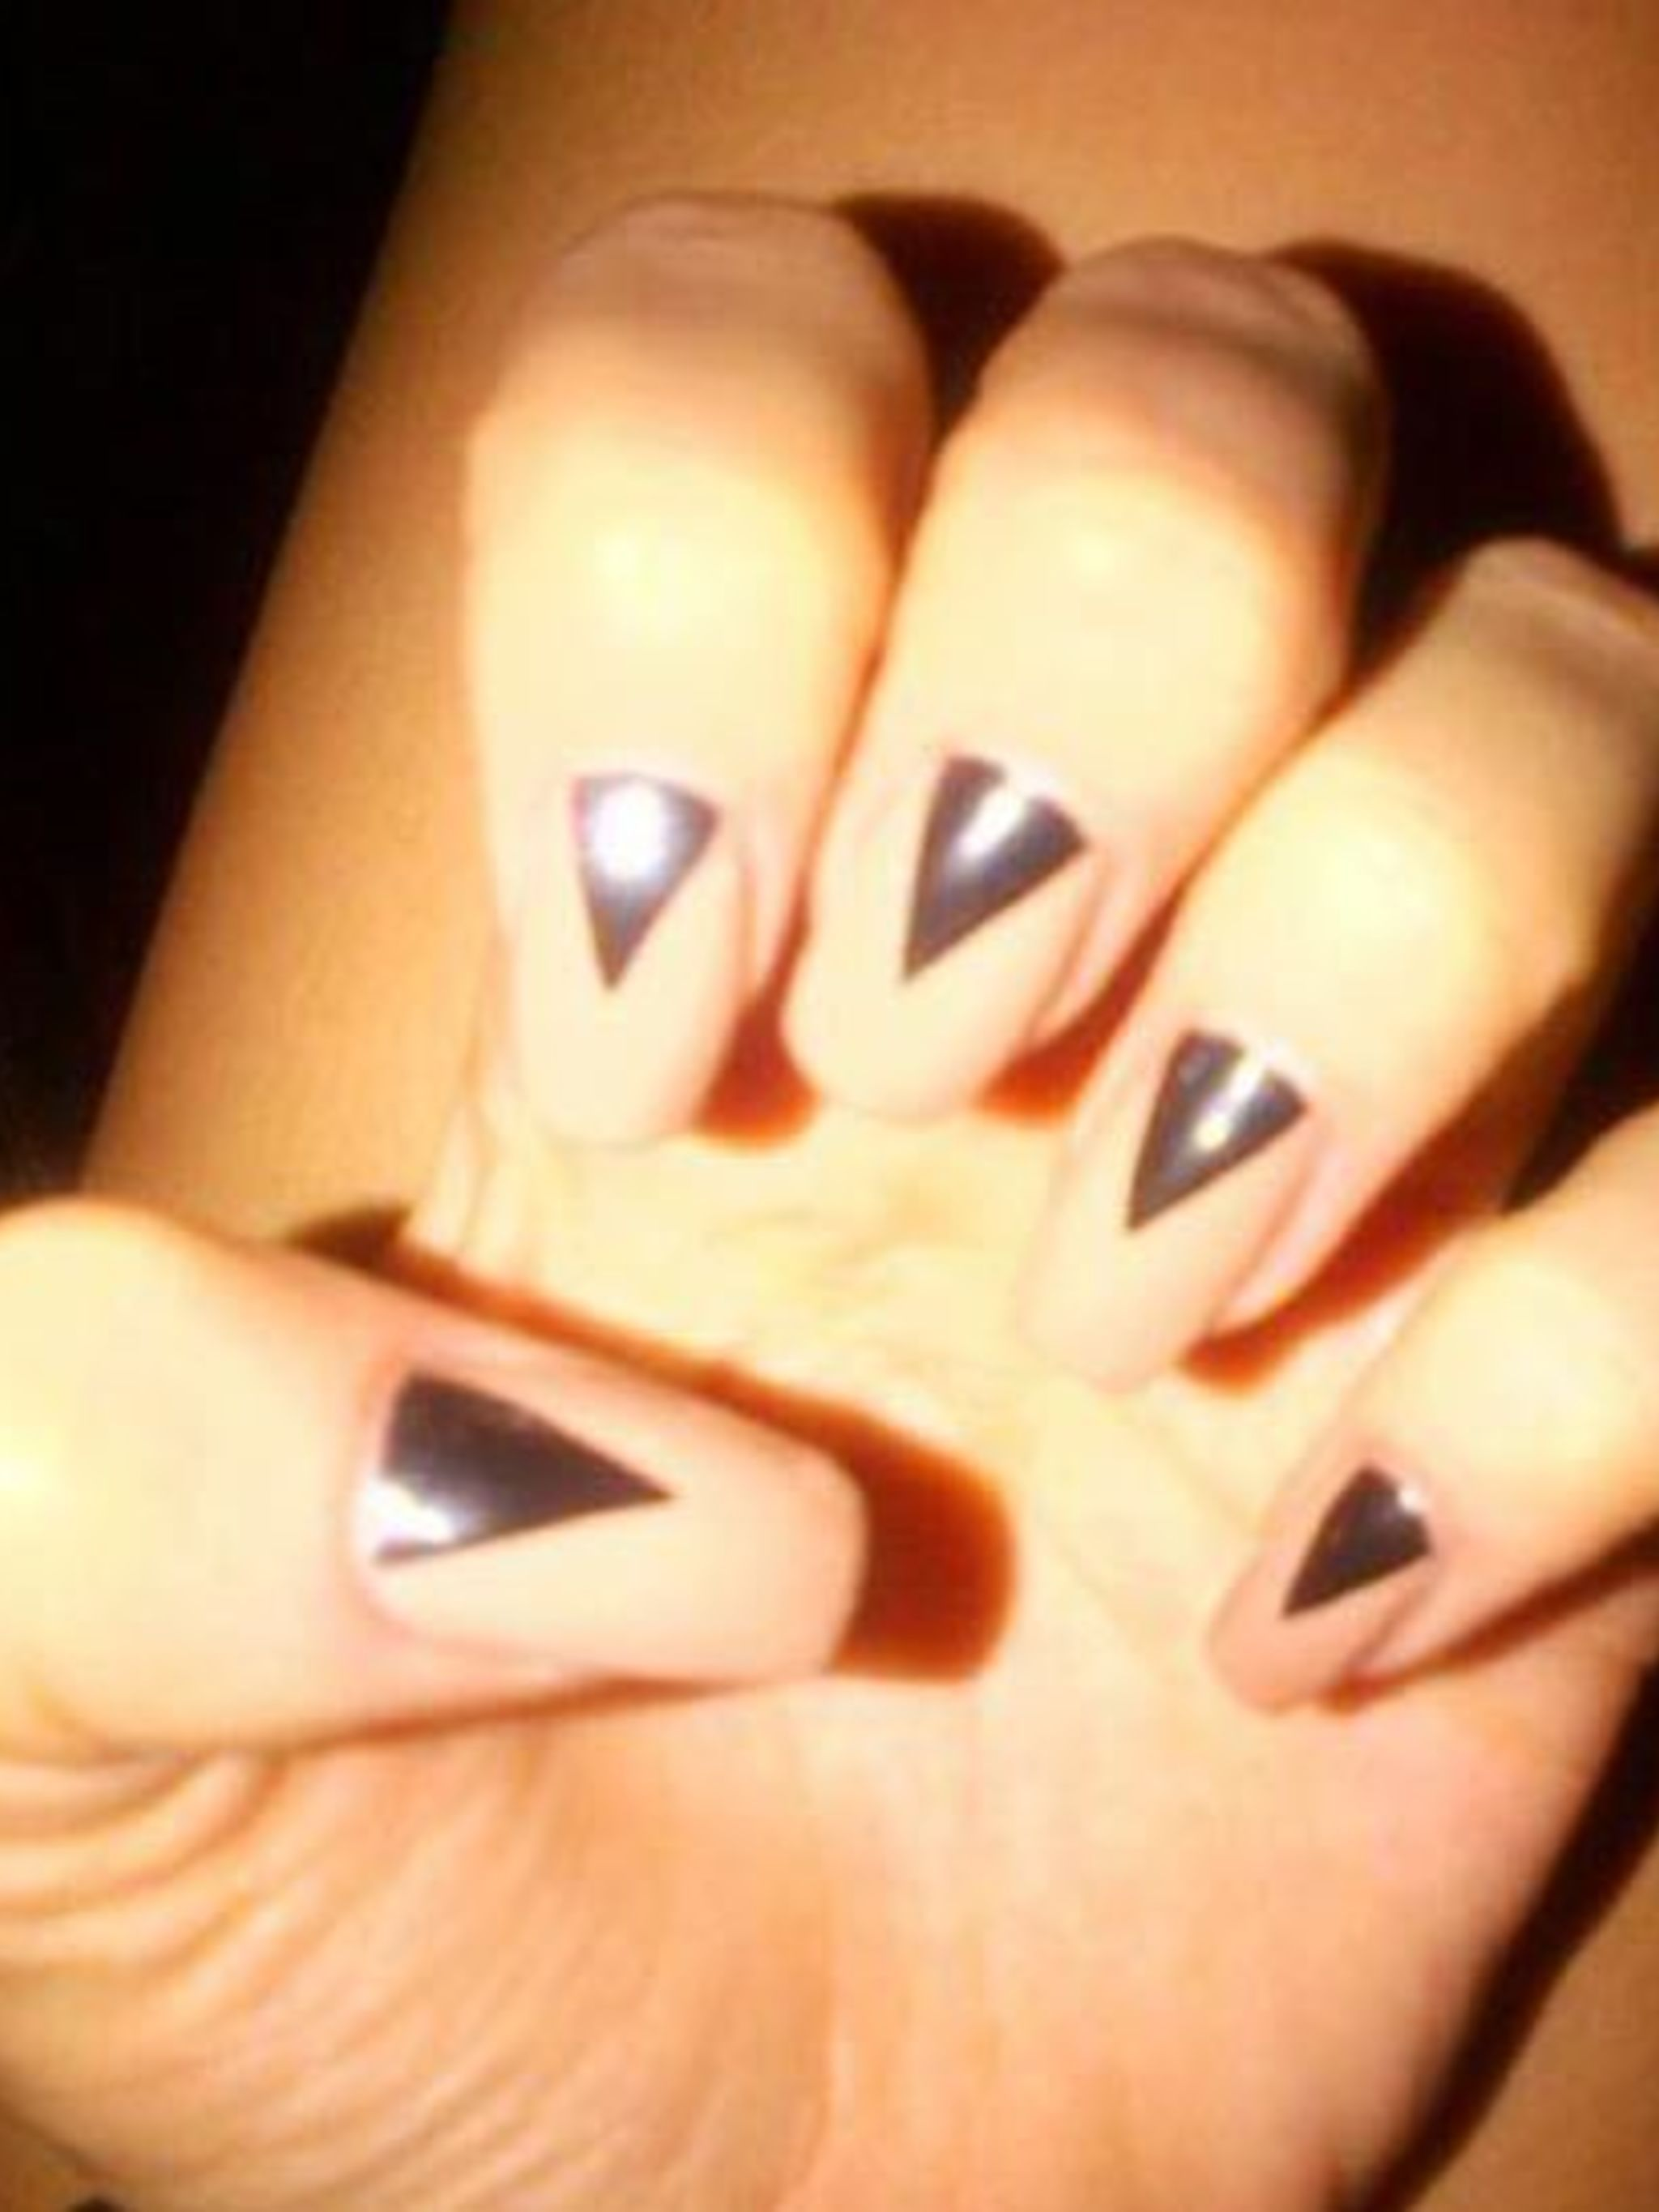 <p>The first in a three-part series we are going to be showing you step-by-step how to recreate three of Jessie J's most fabulous nail art looks starting with <em>The Graphic Moon</em>.</p><p>When Jessie J tweeted this picture of her nail art we just had